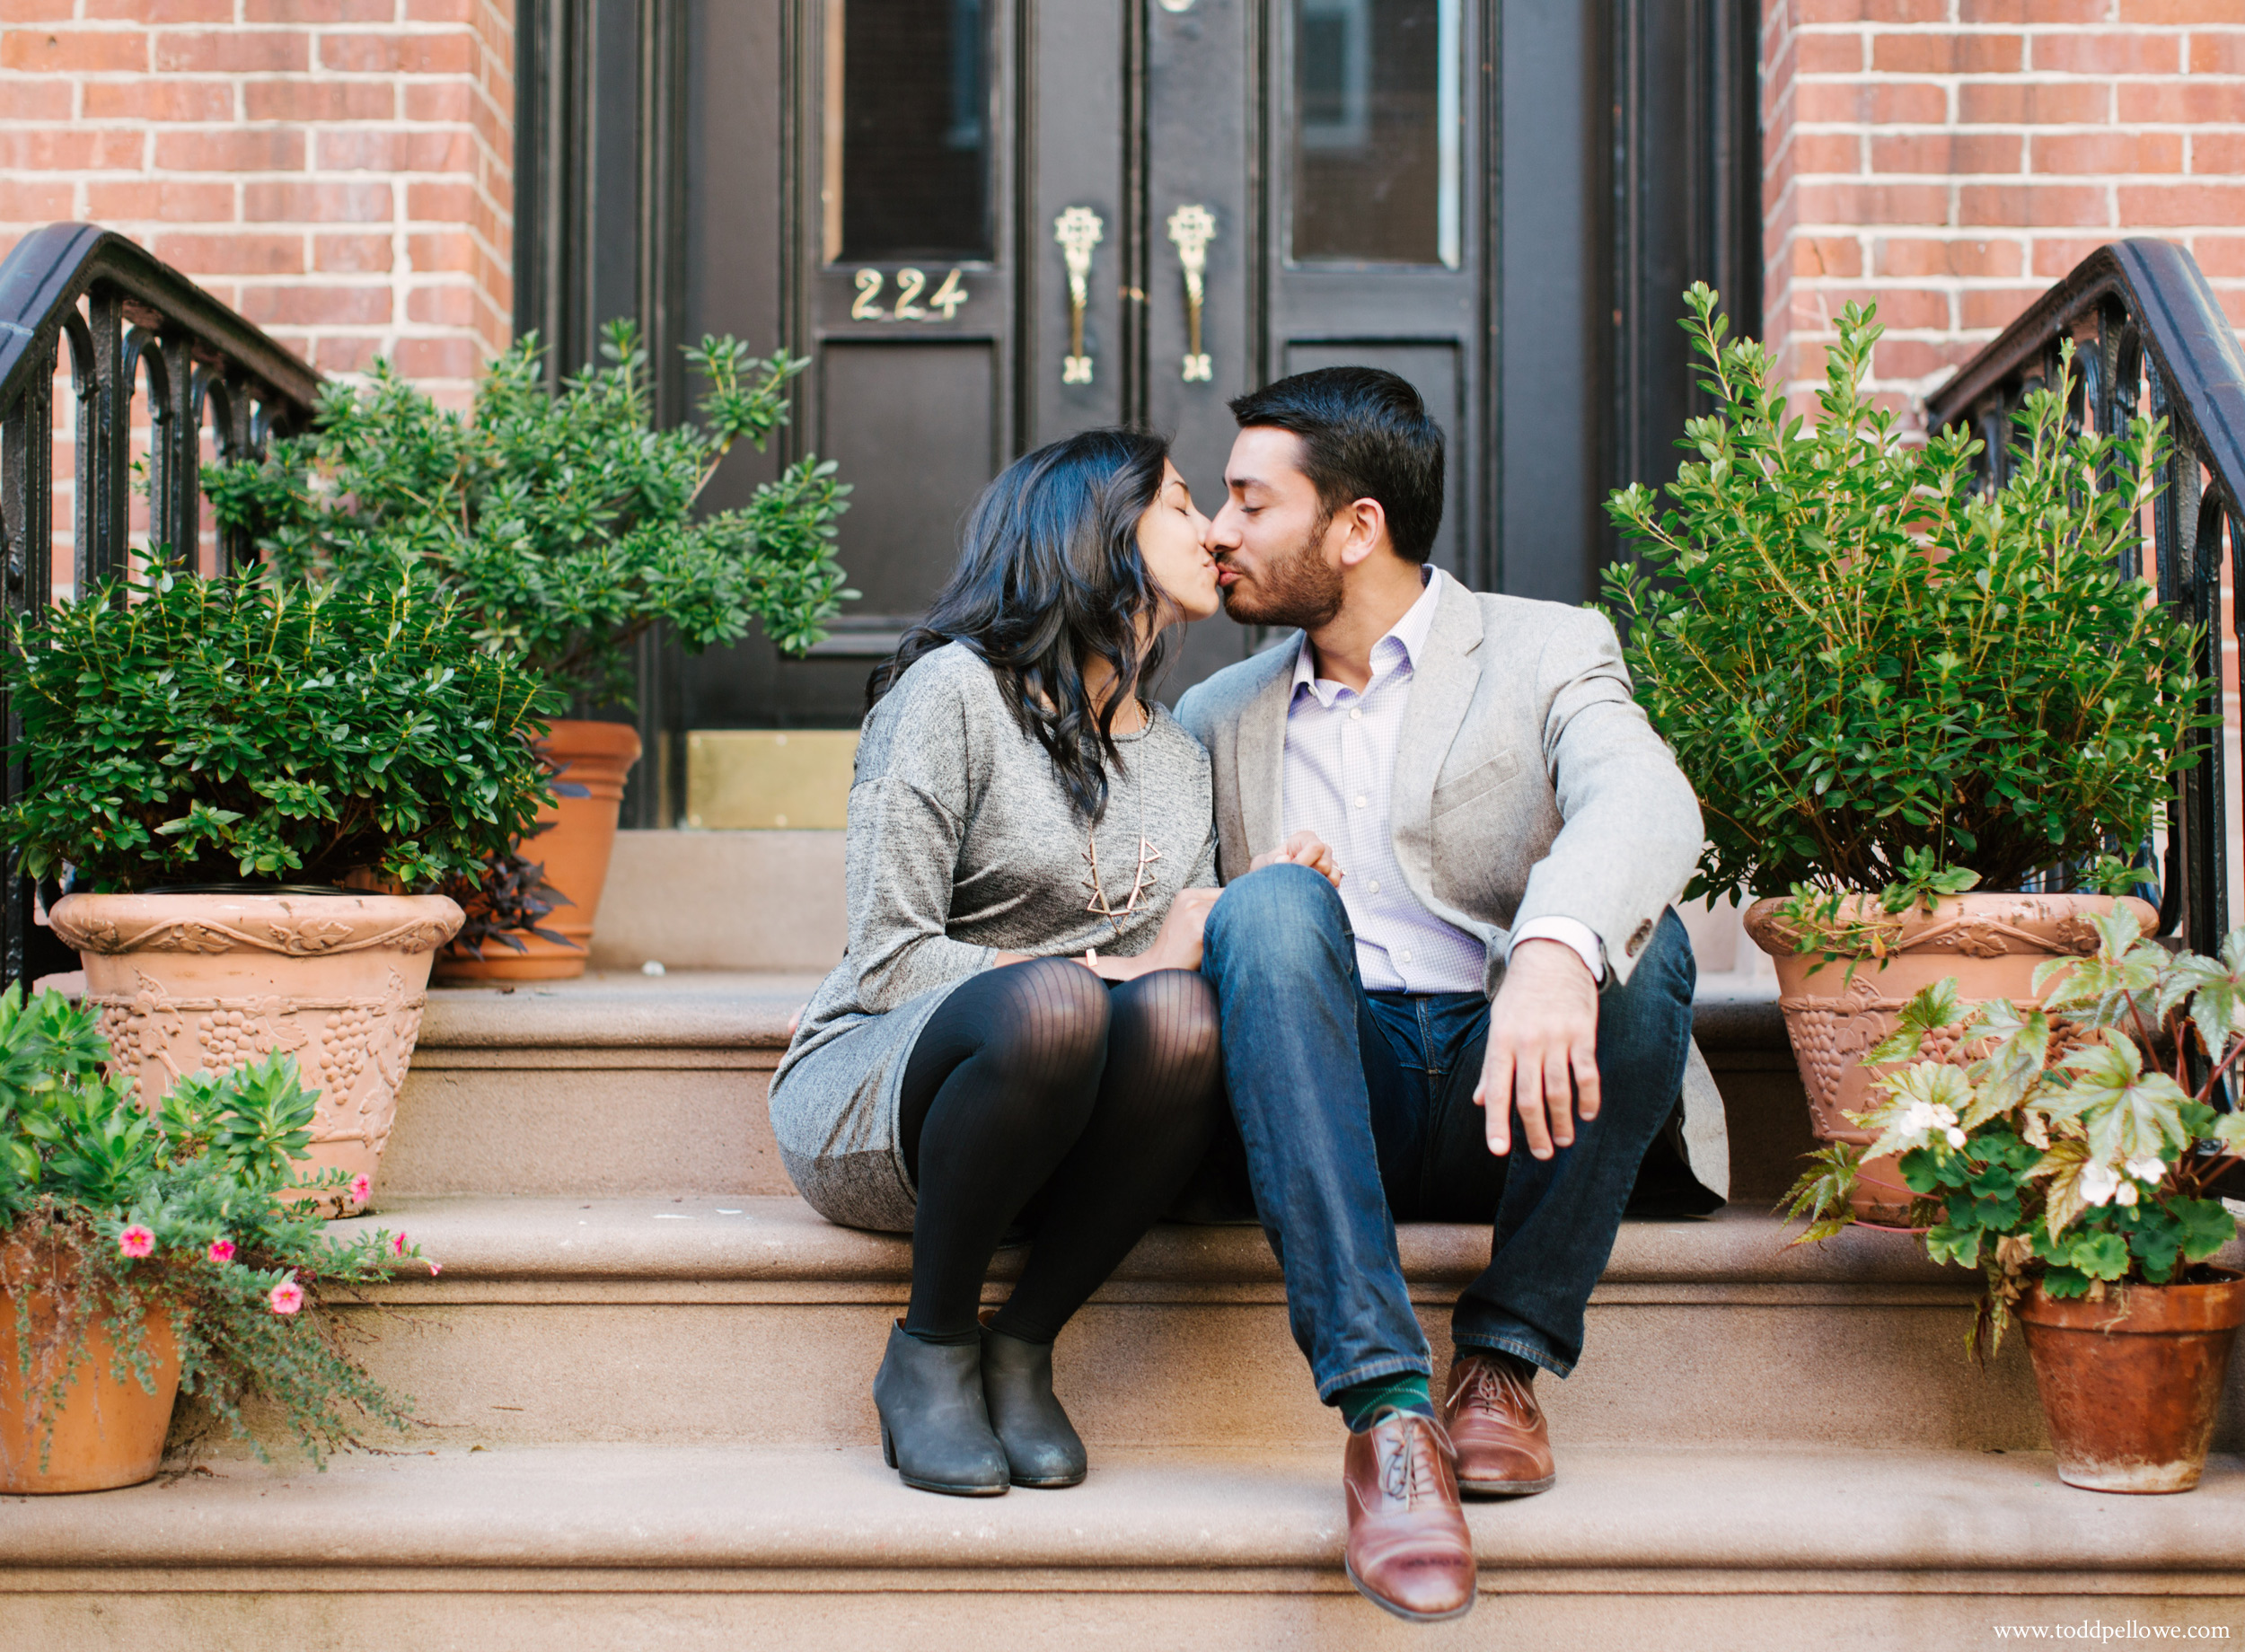 26-brooklyn-new-york-engagement-photography-140.jpg